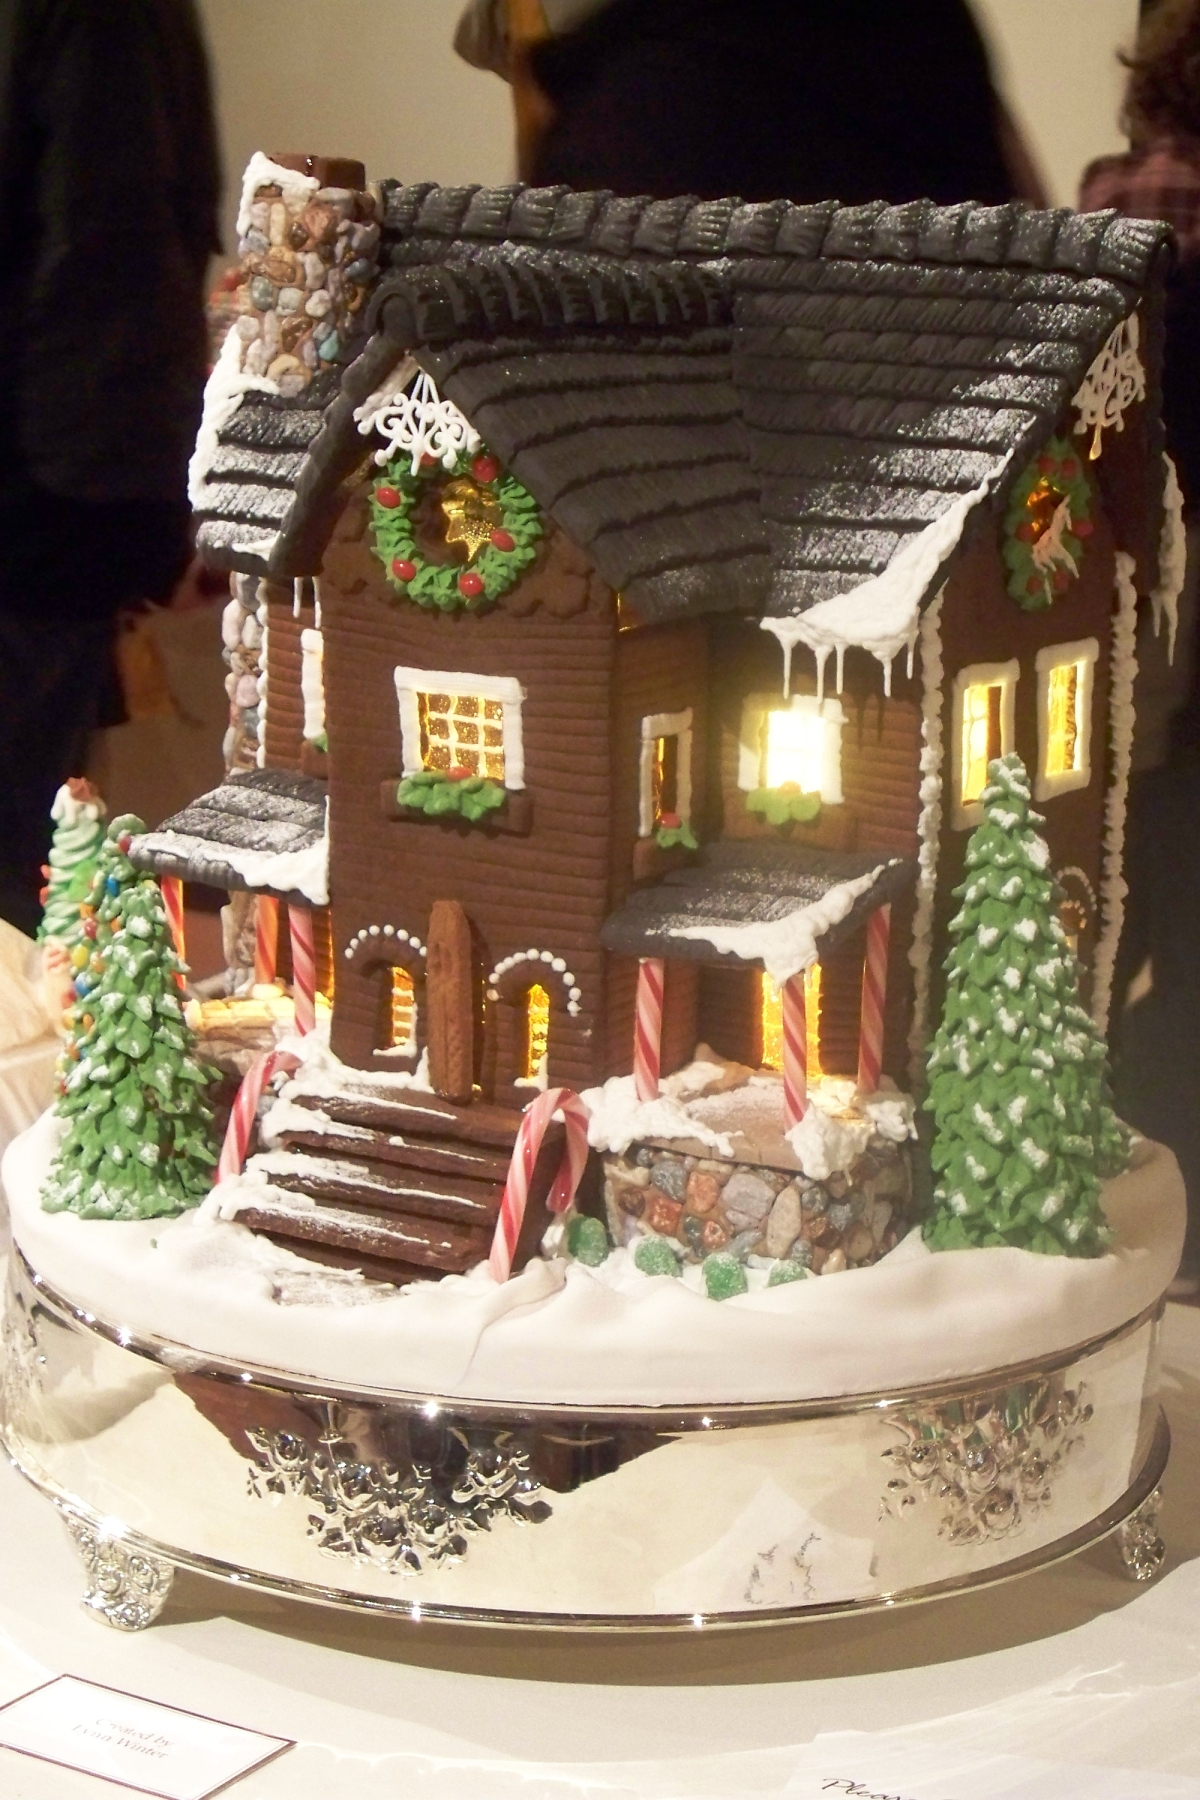 Gingerbread house with steps and trees.jpg